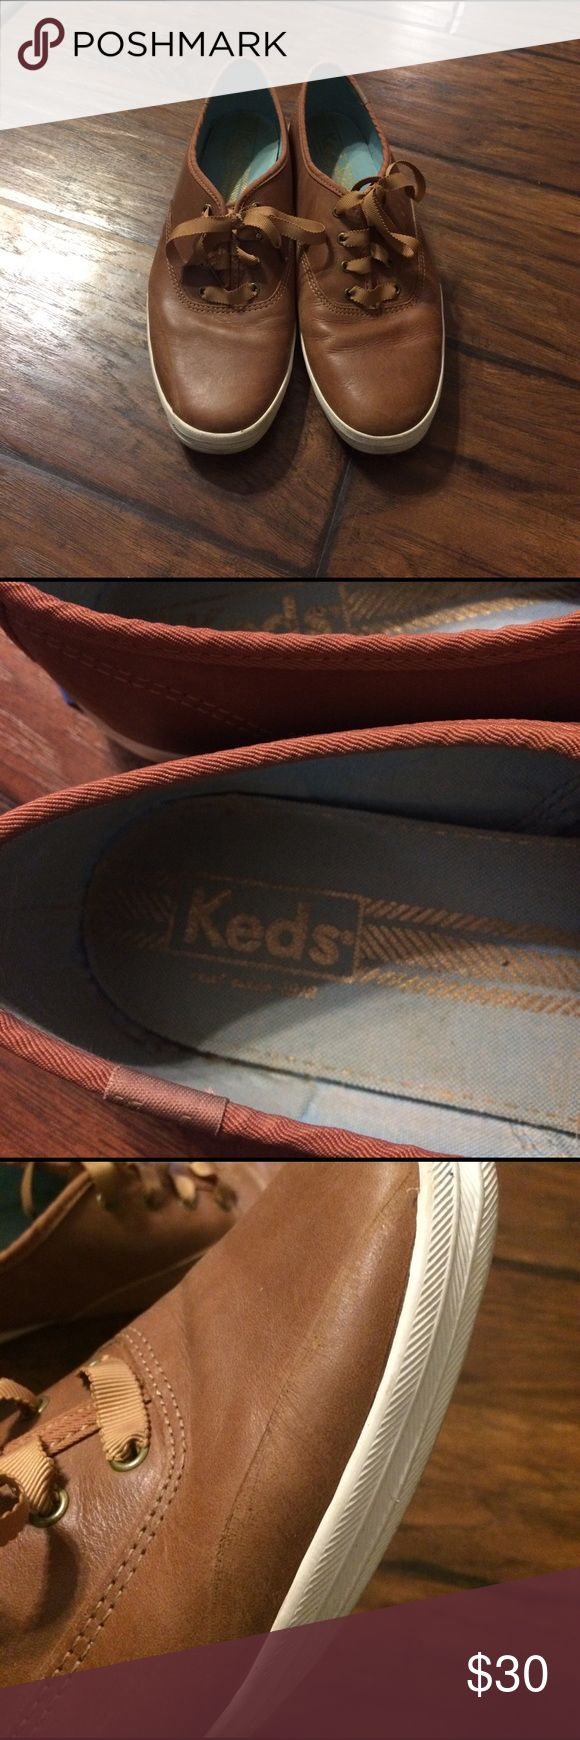 Leather Keds Cognac colored leather Keds with grosgrain ribbon laces. There is a visible scratch on the right foot, see pic, but could be much less obvious with polish. Keds Shoes Sneakers